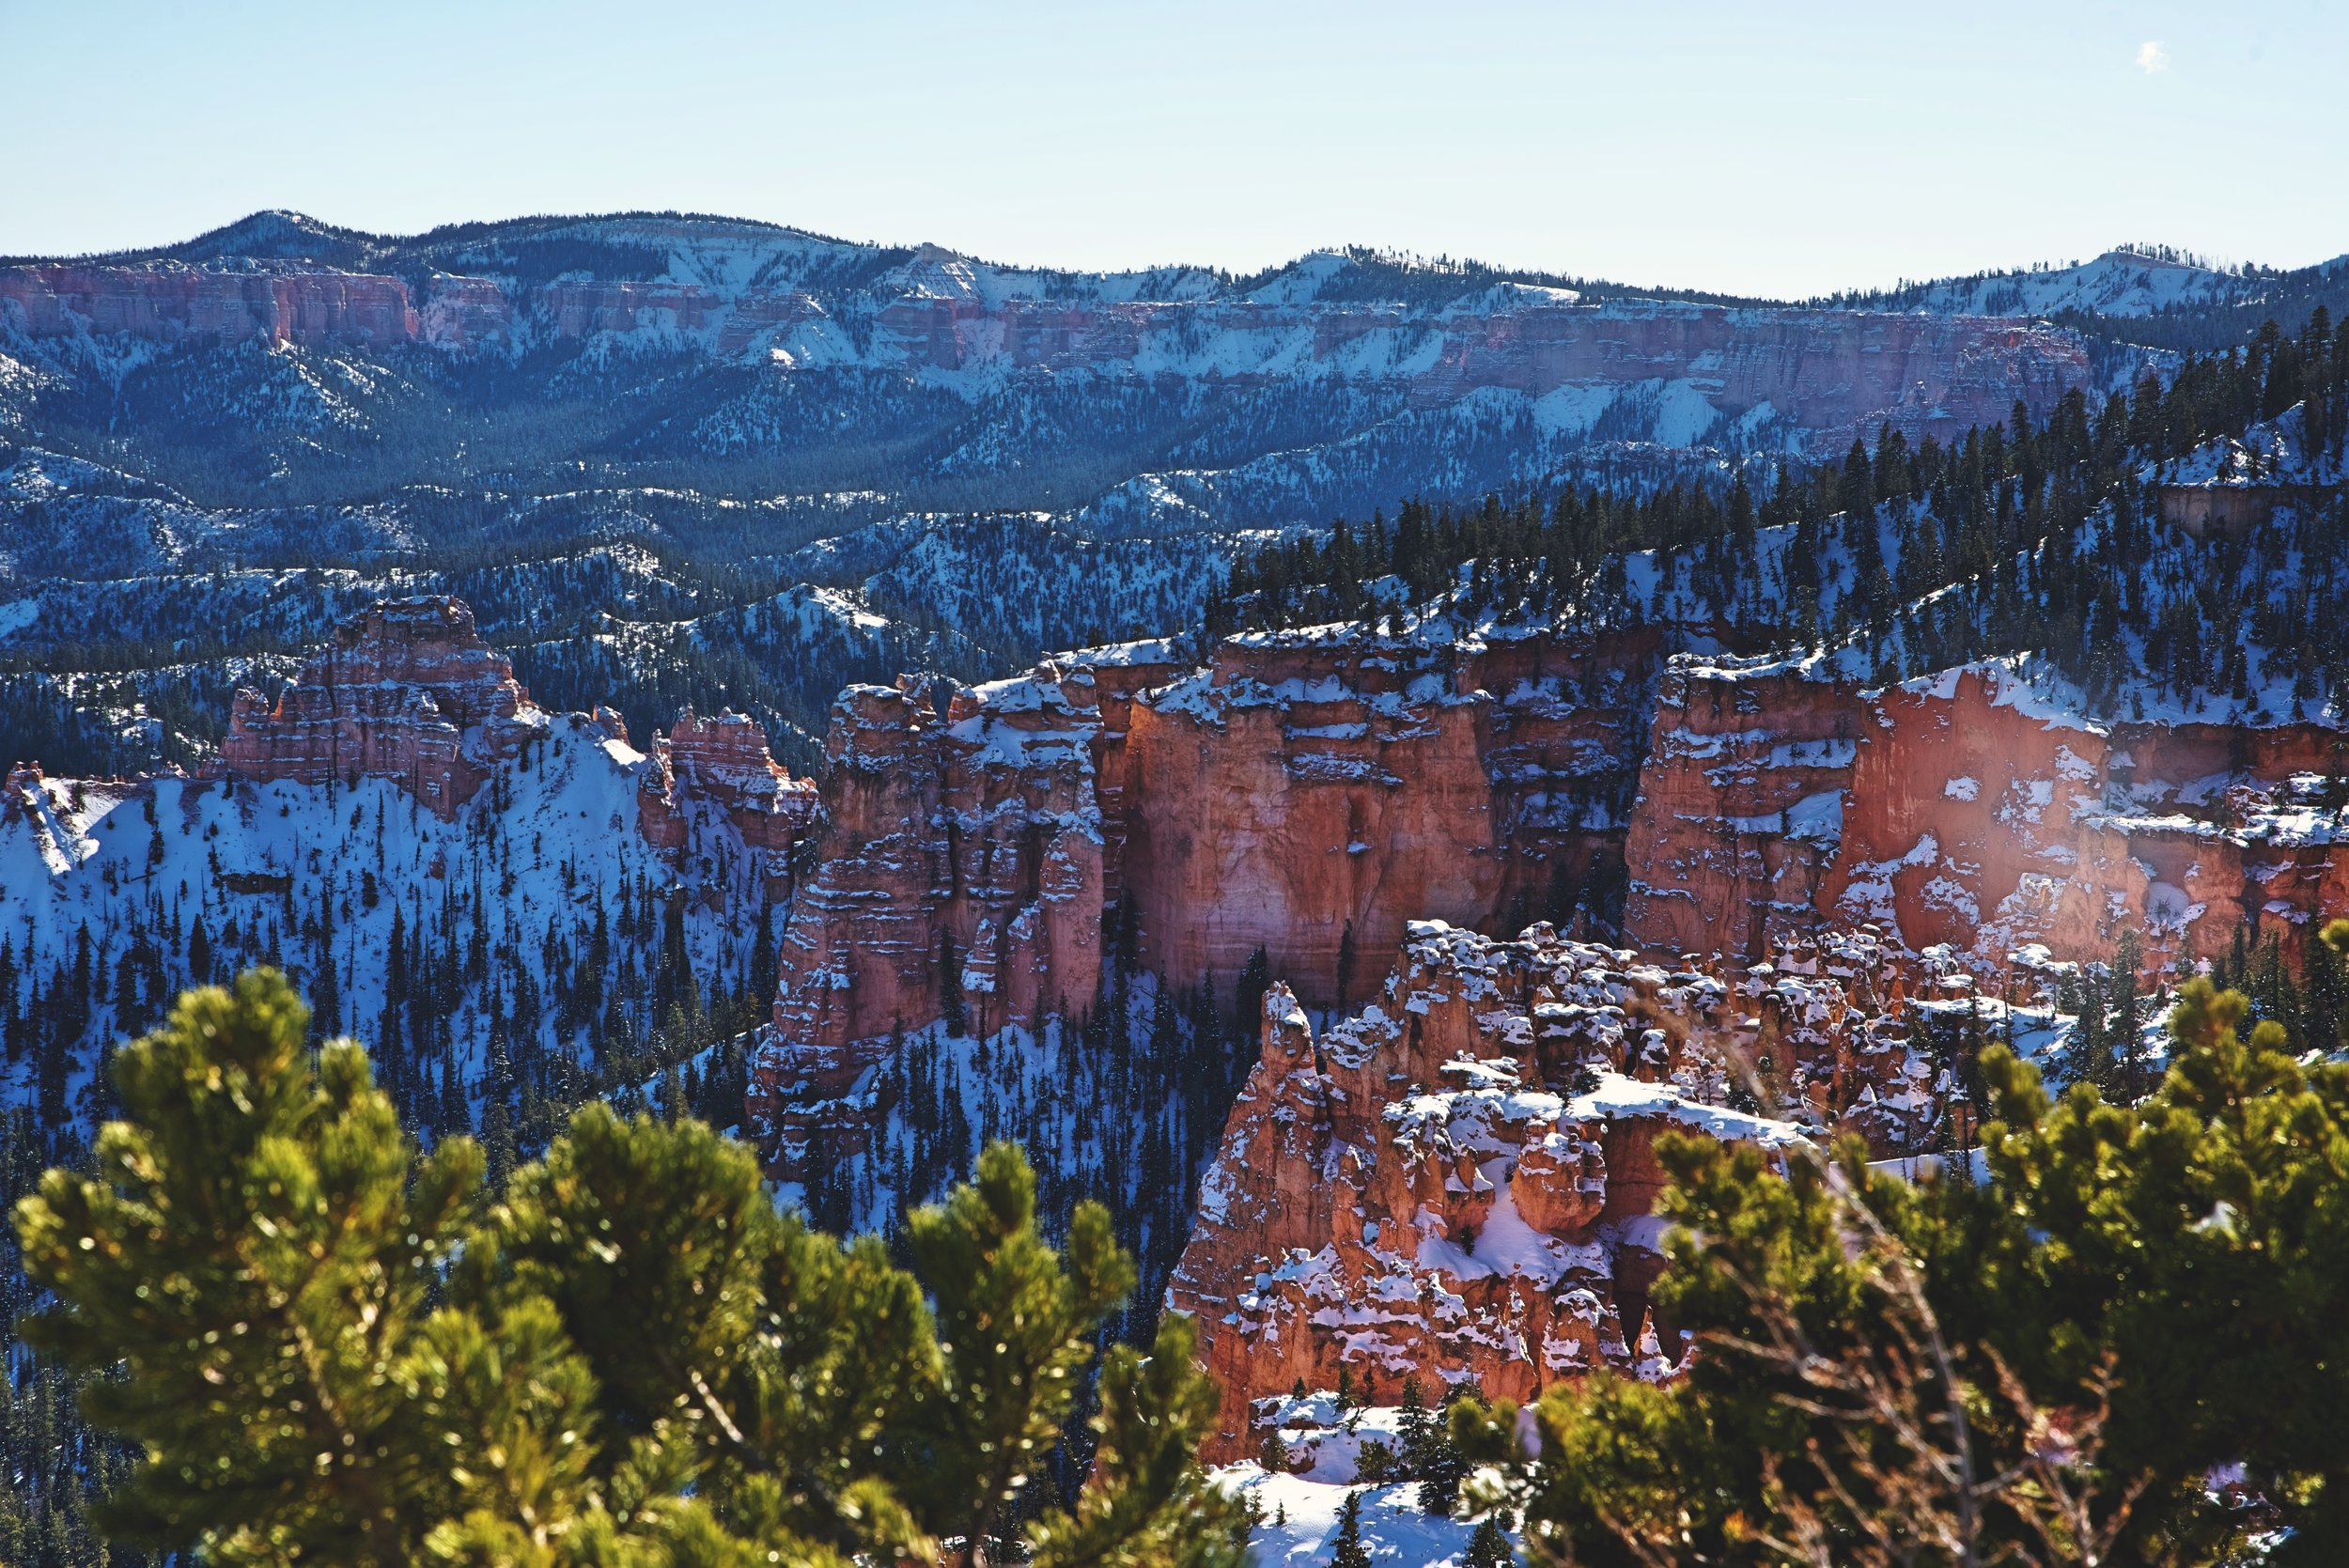 The Pink Cliffs of the Aquarius Plateau are what the hoodoos of Bryce Canyon are carved from.